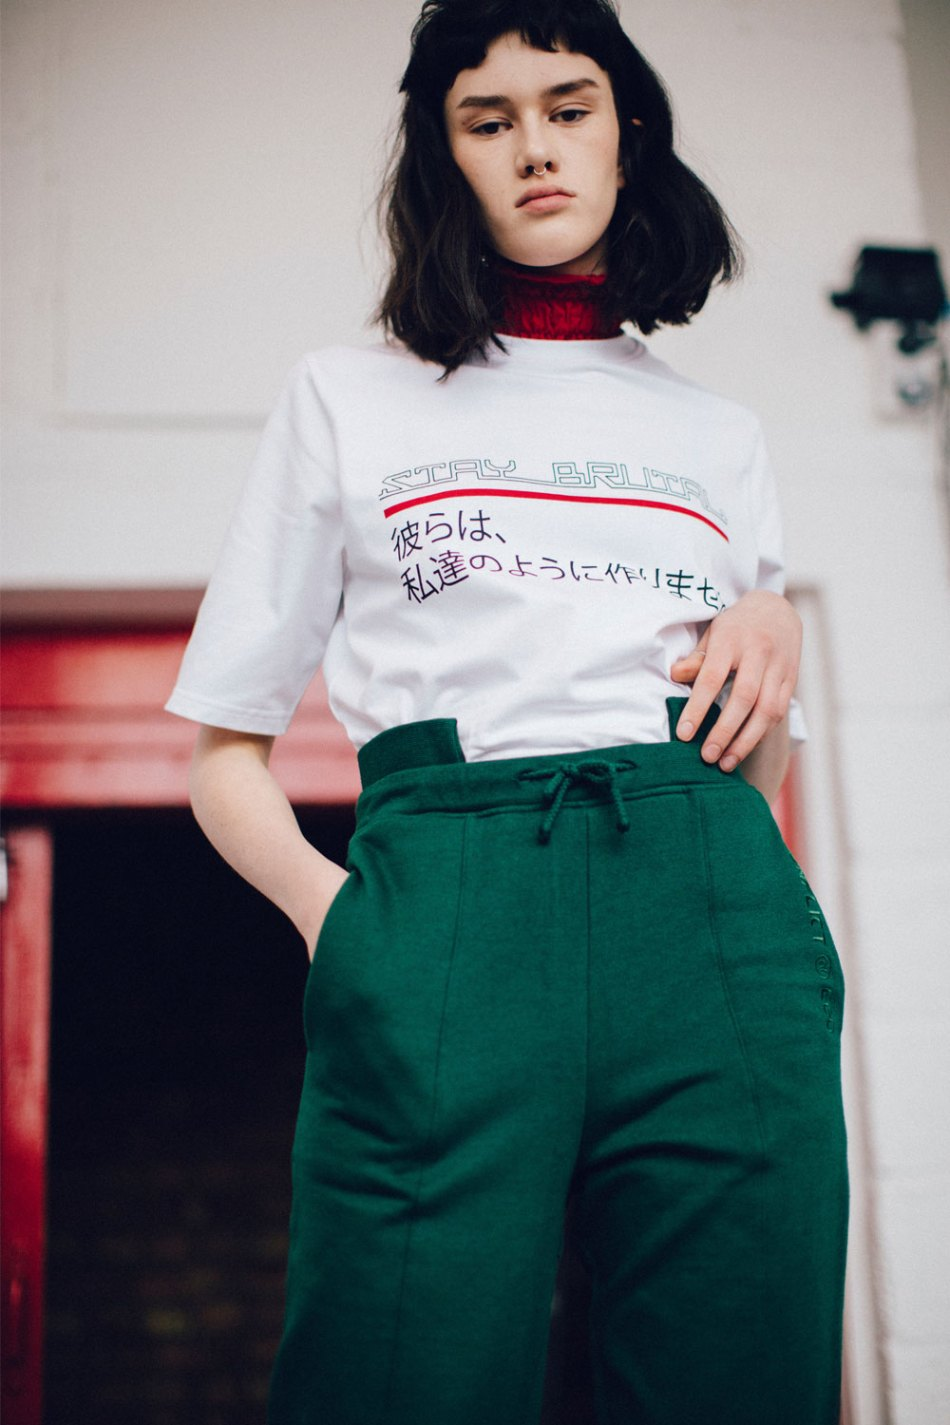 """White cotton t-shirt with stay brutal printed slogan and Japanese text reading """"They don't make them like us anymore"""". A statement empowering people to stay true to what they believe in."""